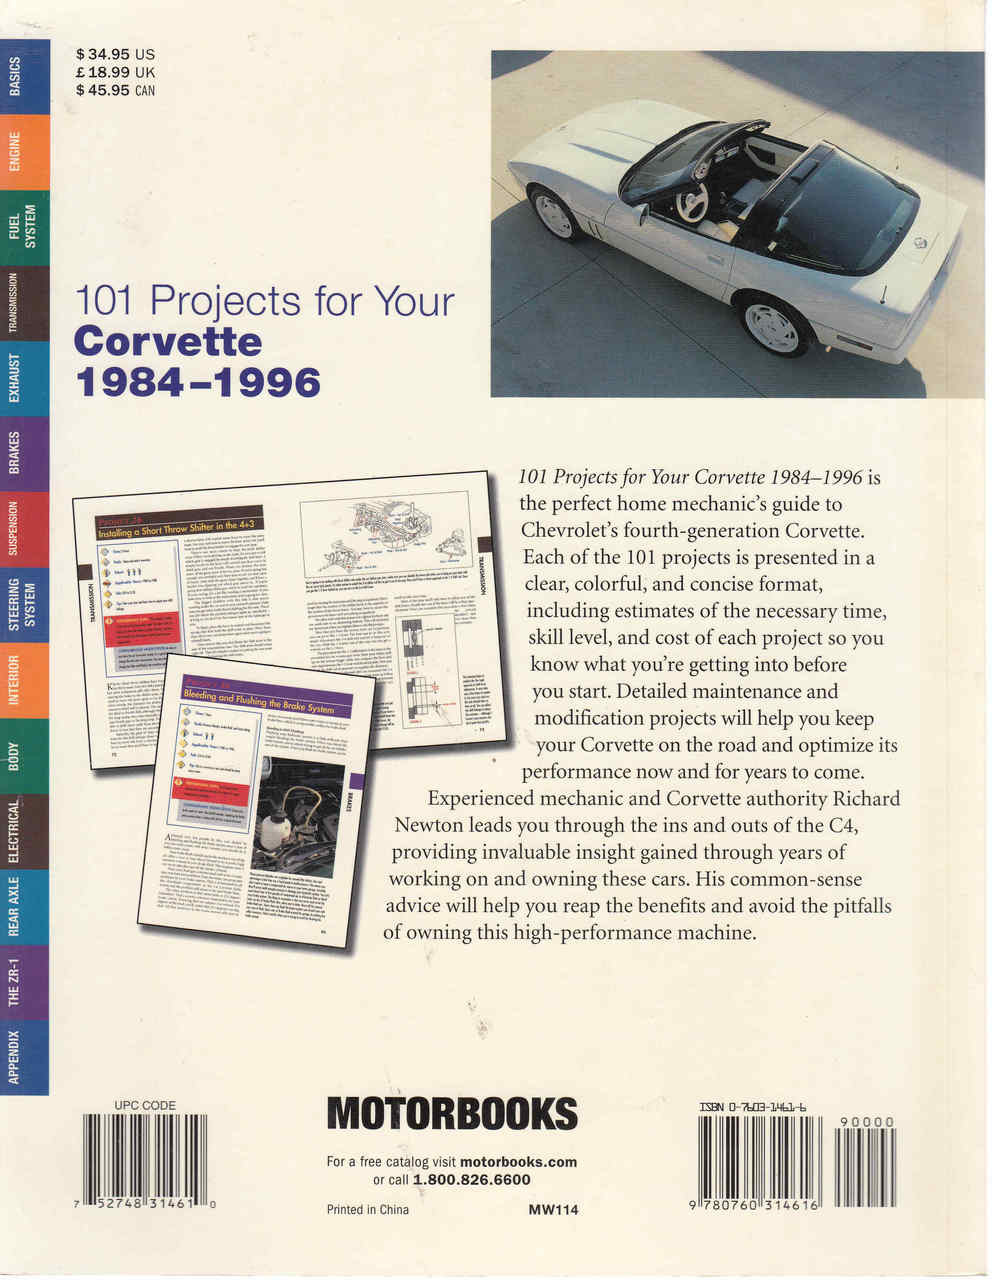 ... 101 Projects For Your Corvette 1984 - 1996 (9780760314616) - back